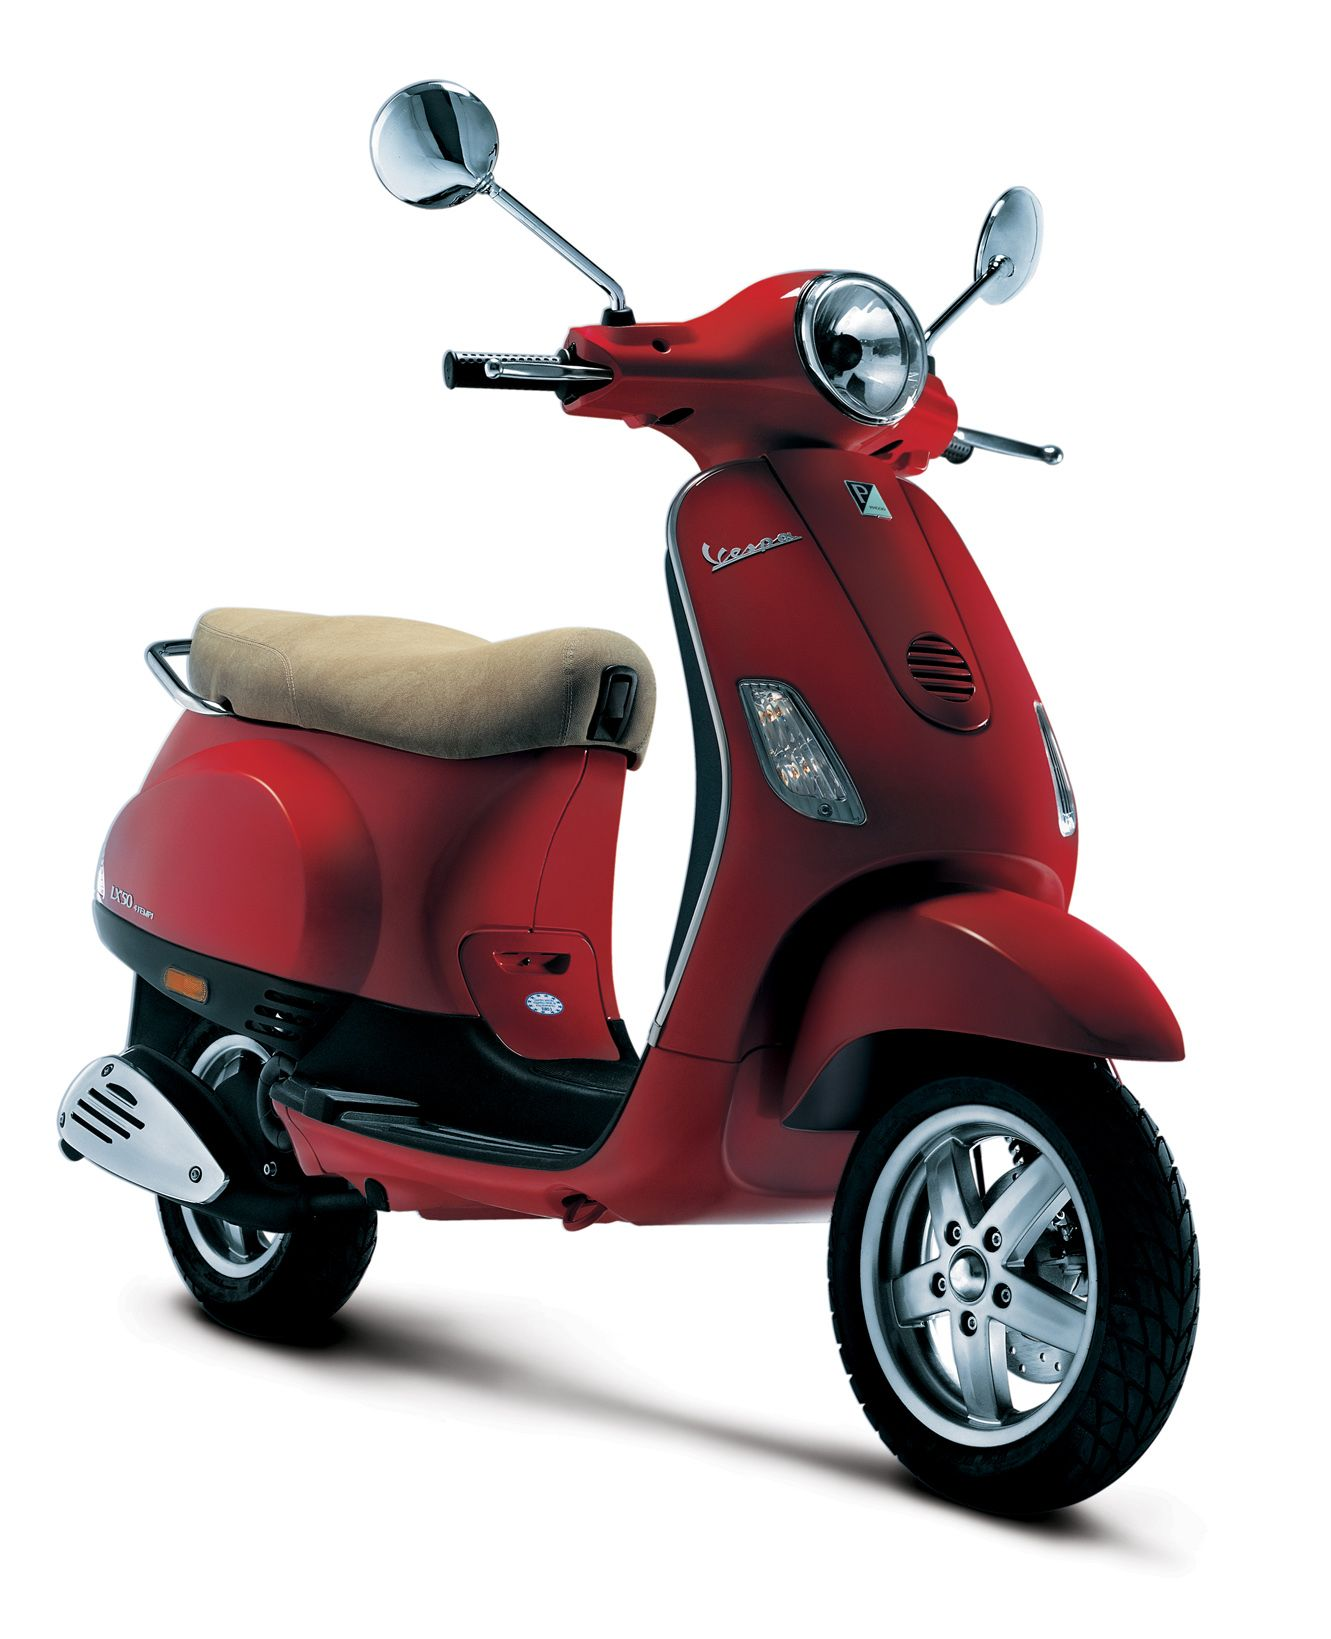 Scooter Rundown Best Fits From Tall To Small